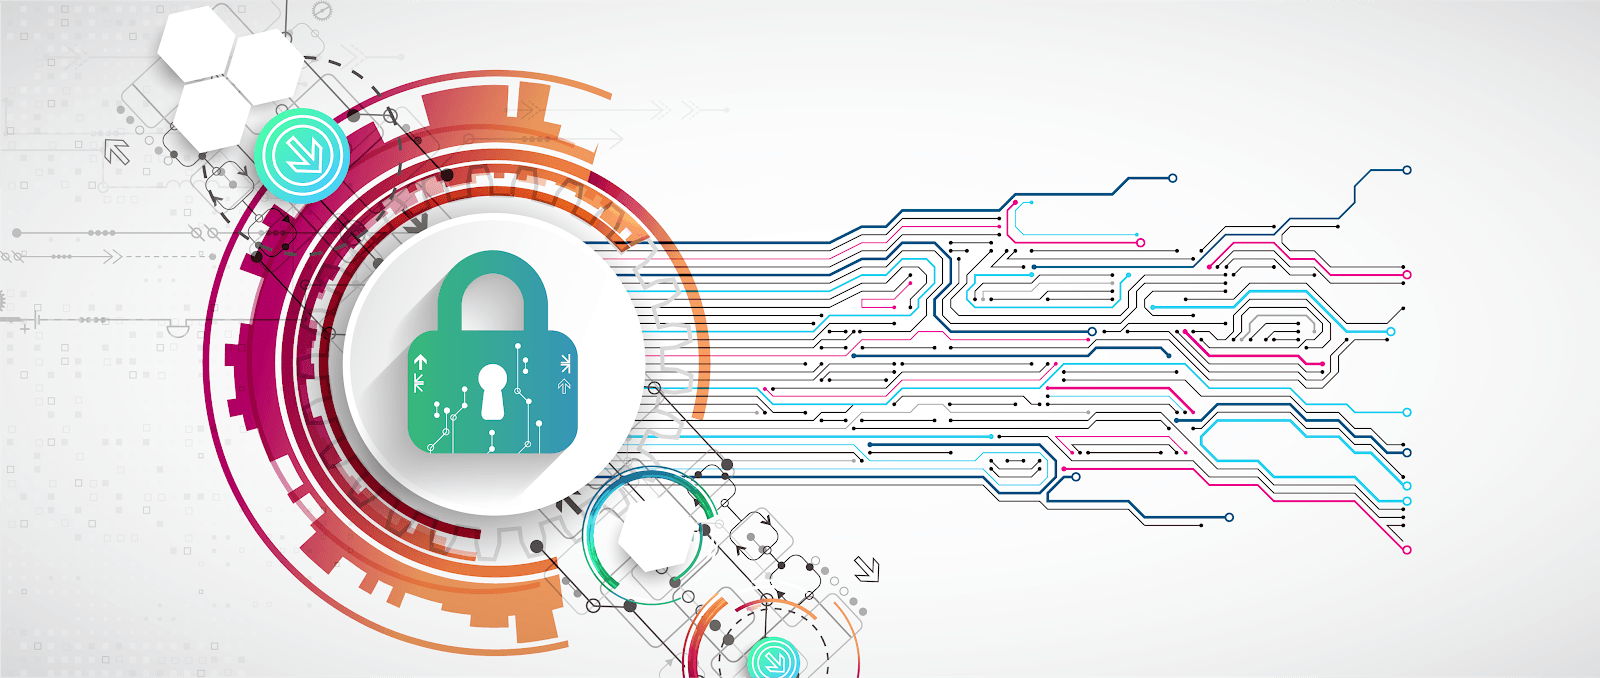 An illustration depicting the role of security in data and technology; a secure lock icon overlays graphics of circuitry and data.